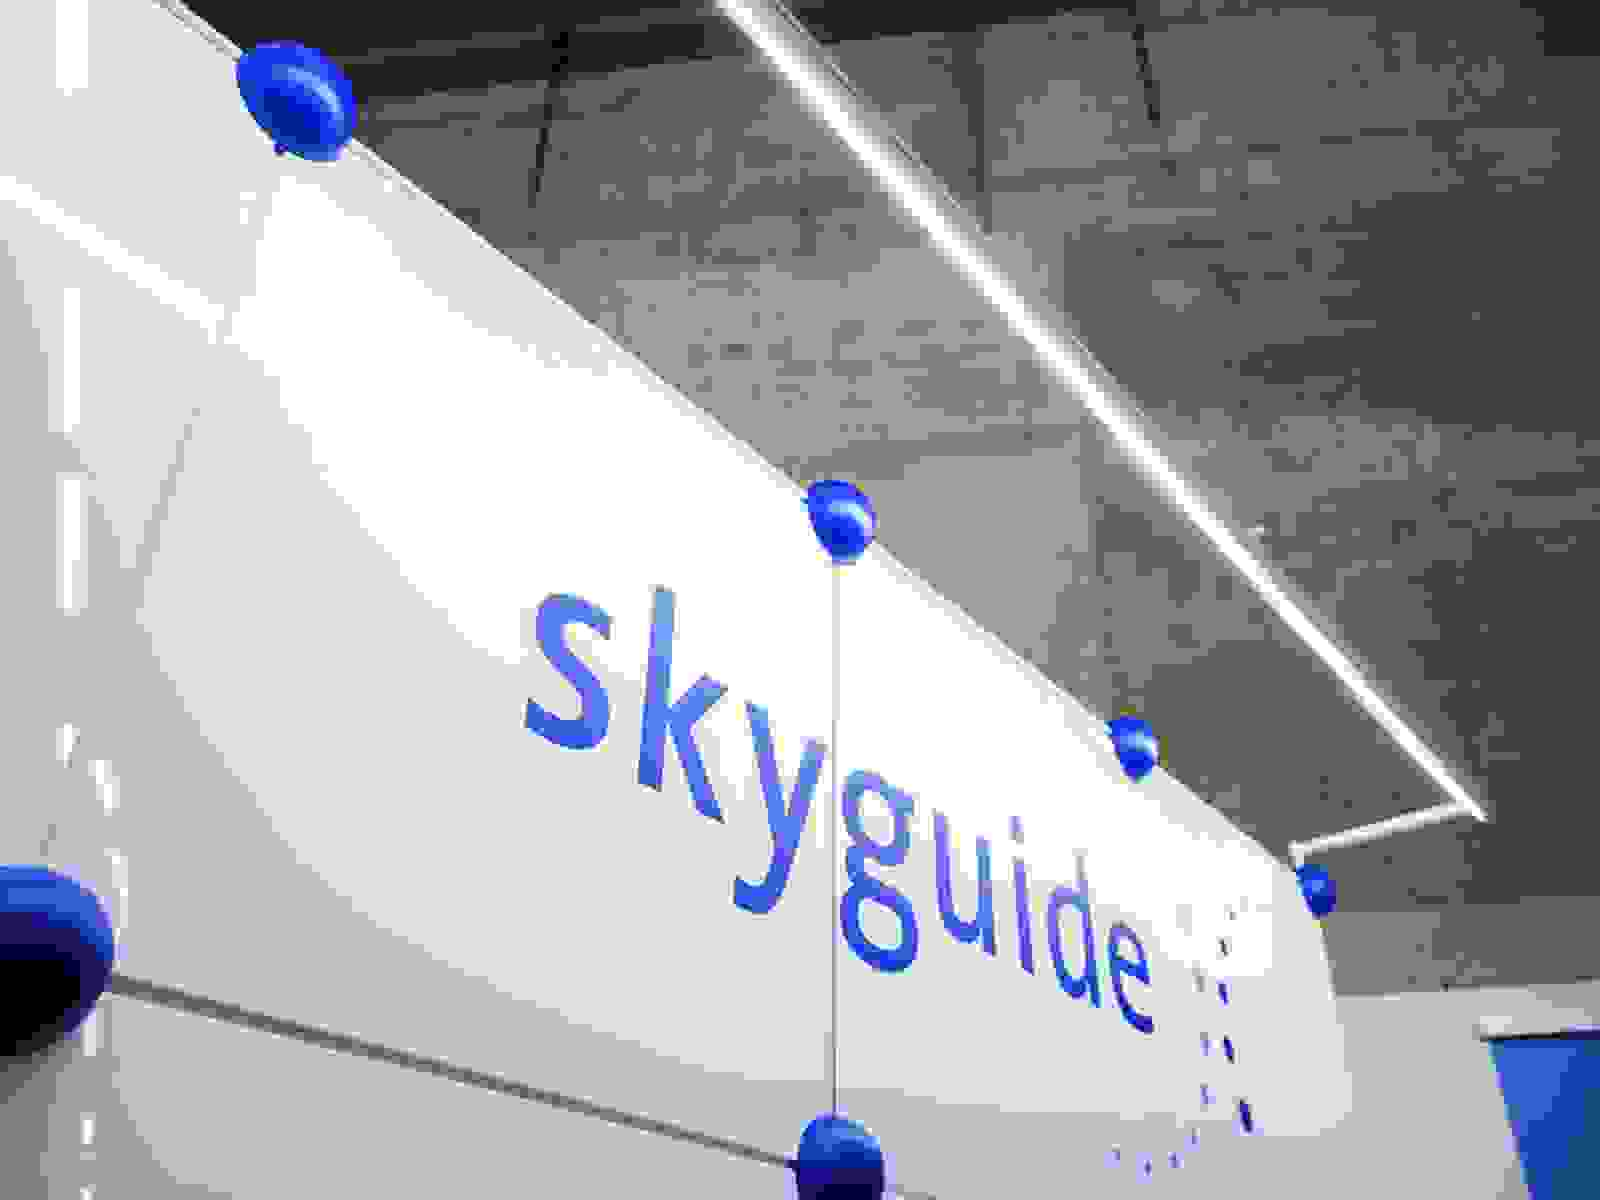 Messesystem Sysball bei Skyguide